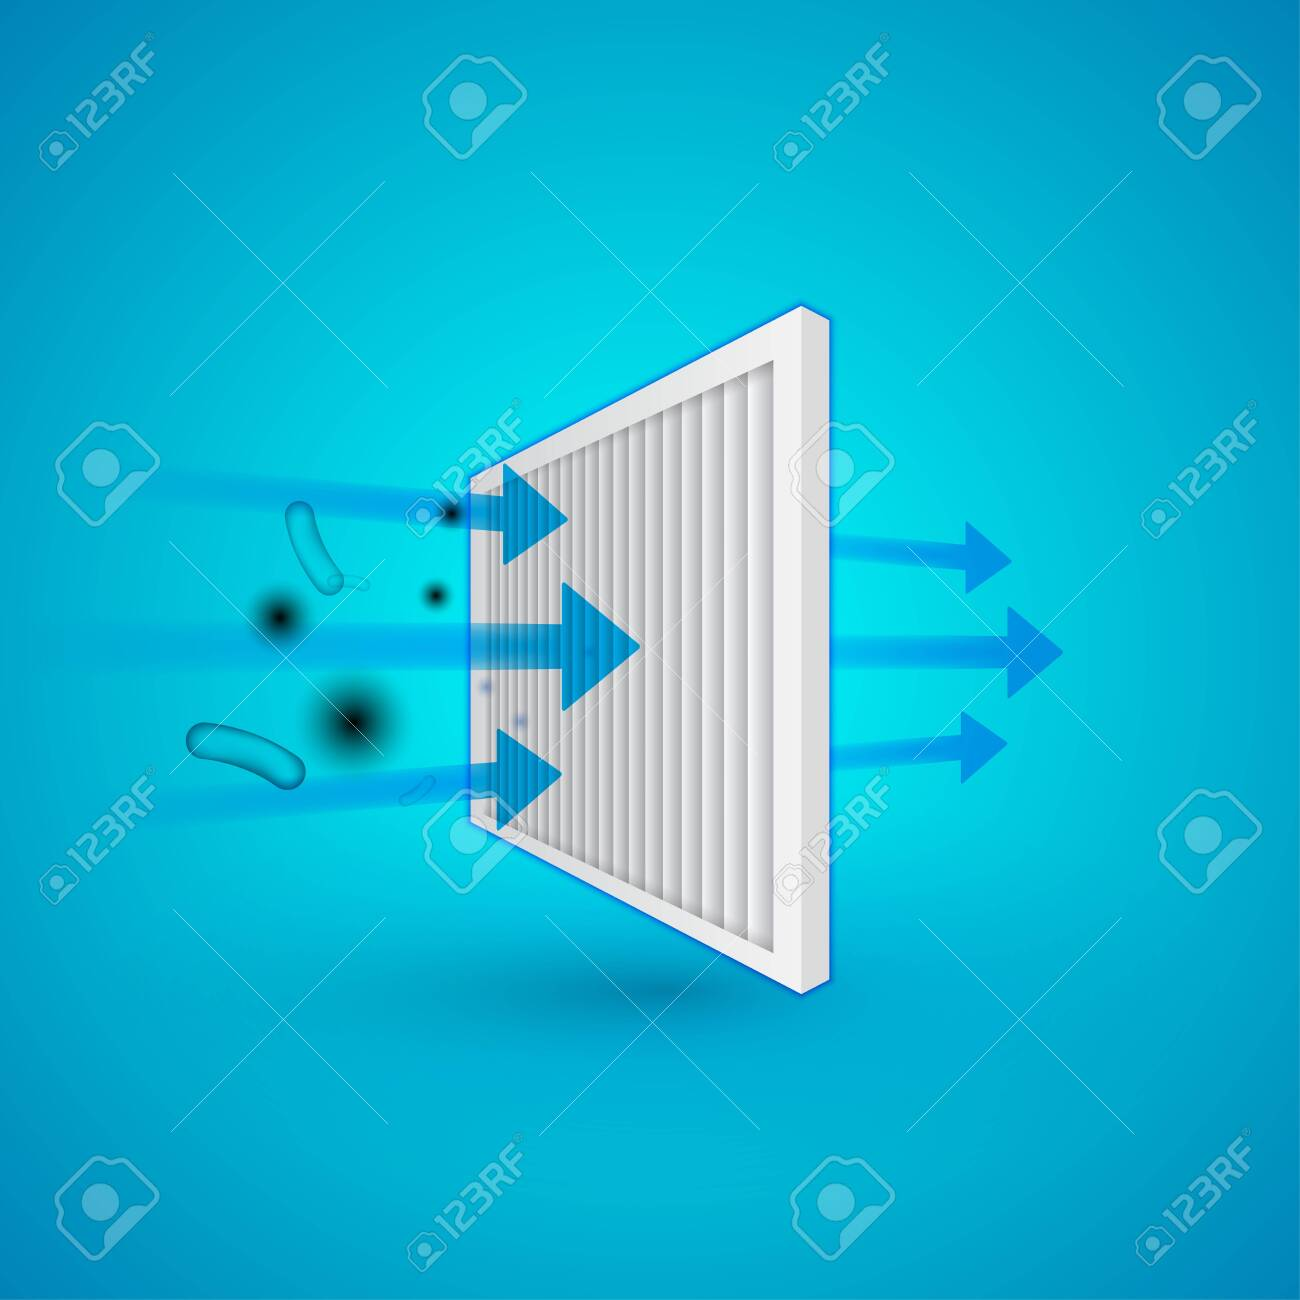 Air filter effect. Antibacterial, dust, solid particle filtration and ventilation technology example. - 142252435